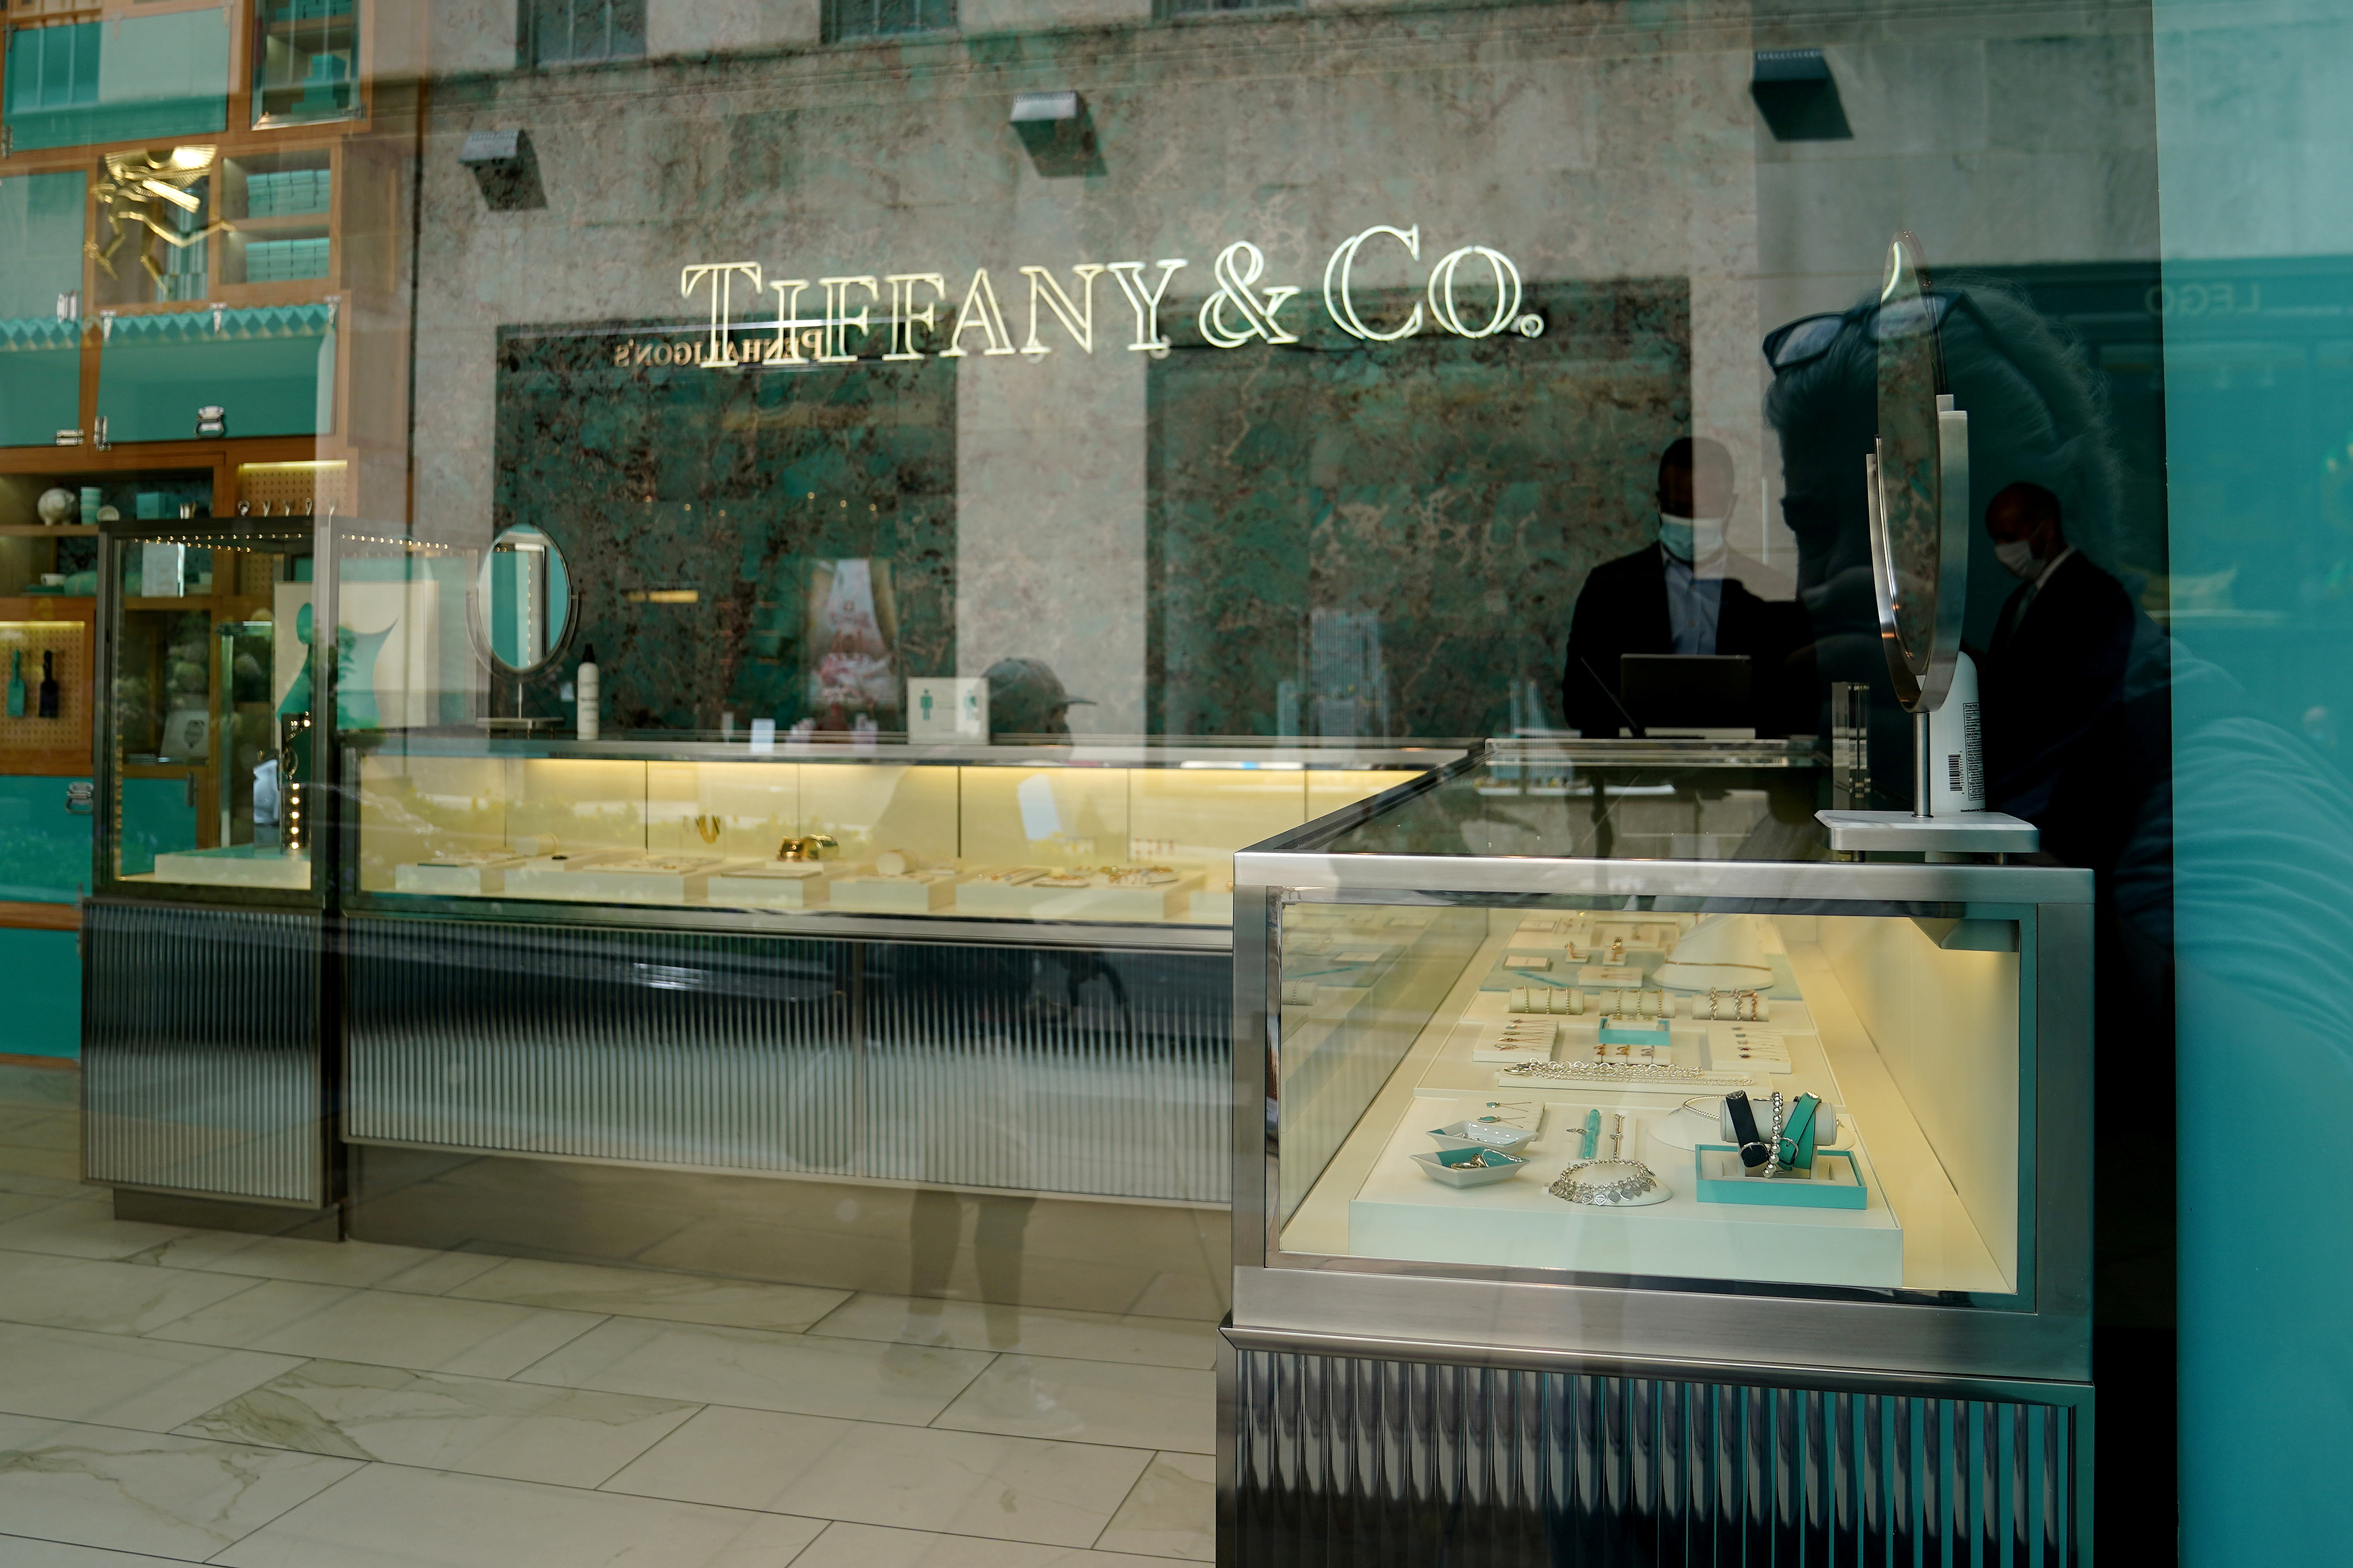 A Tiffany & Co. store is pictured in the Manhattan borough of New York City, New York, U.S., September 10, 2020.  REUTERS/Carlo Allegri/File Photo